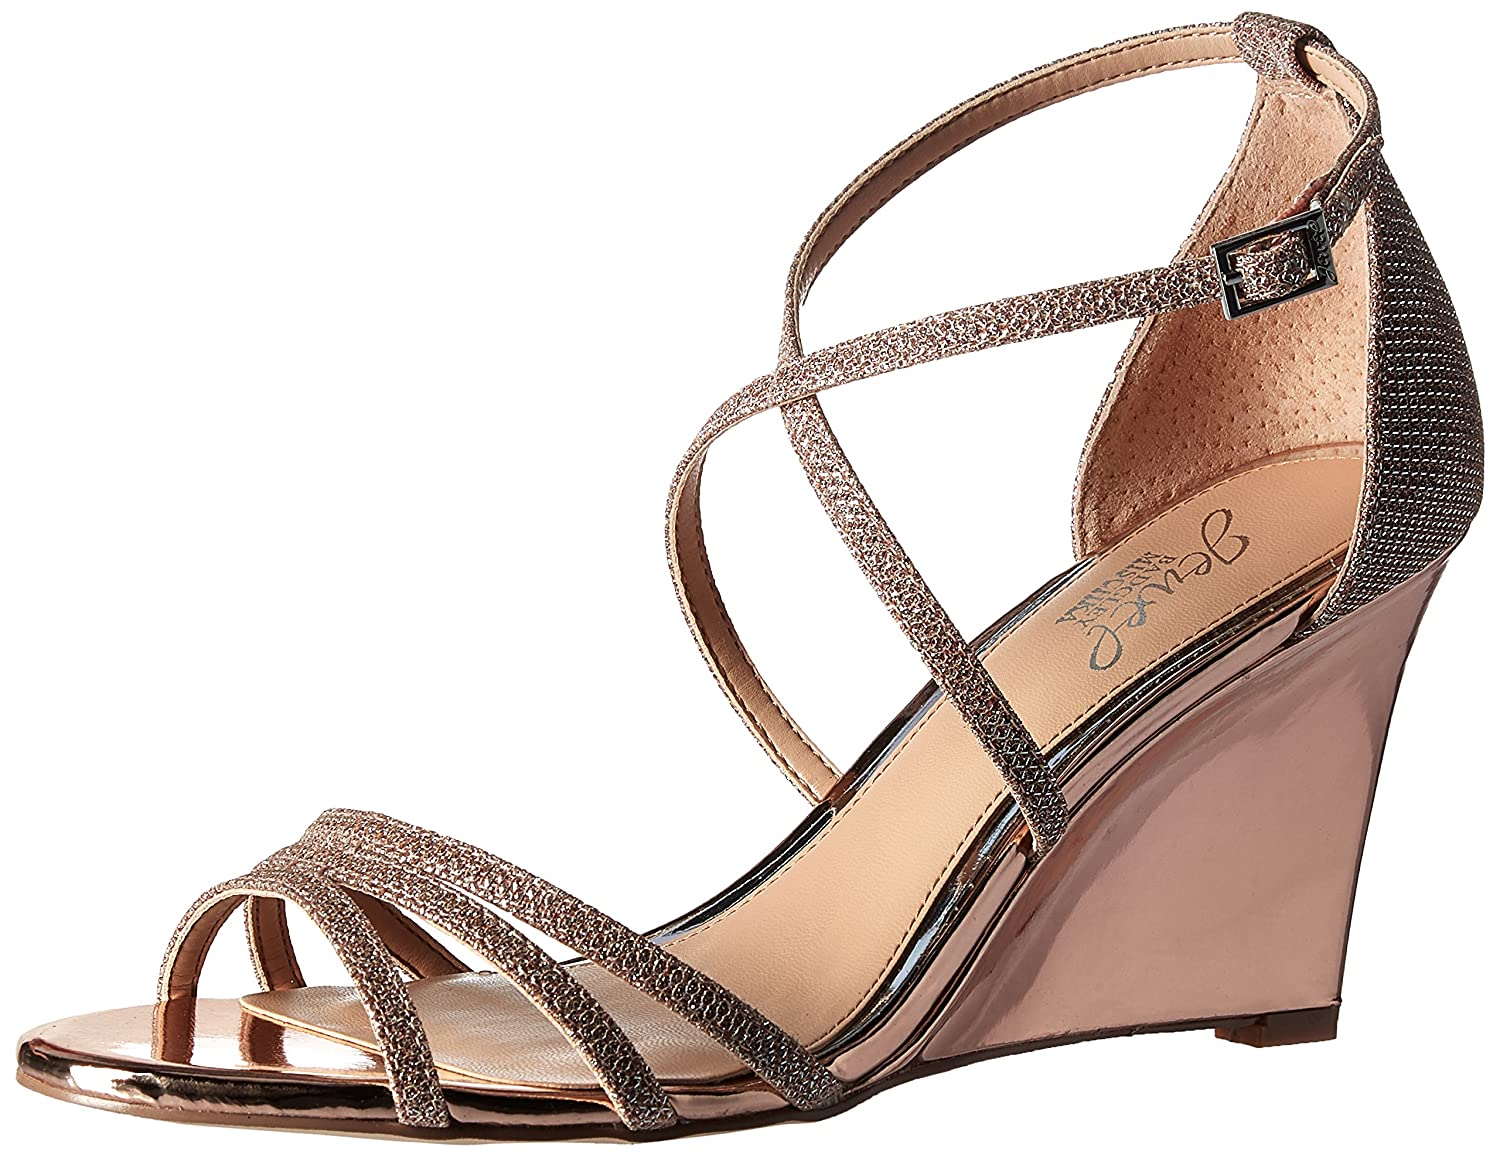 Badgley Mischka Jewel Women's Hunt Wedge Sandal B06Y3MR83R 9.5 B(M) US|Rose Gold